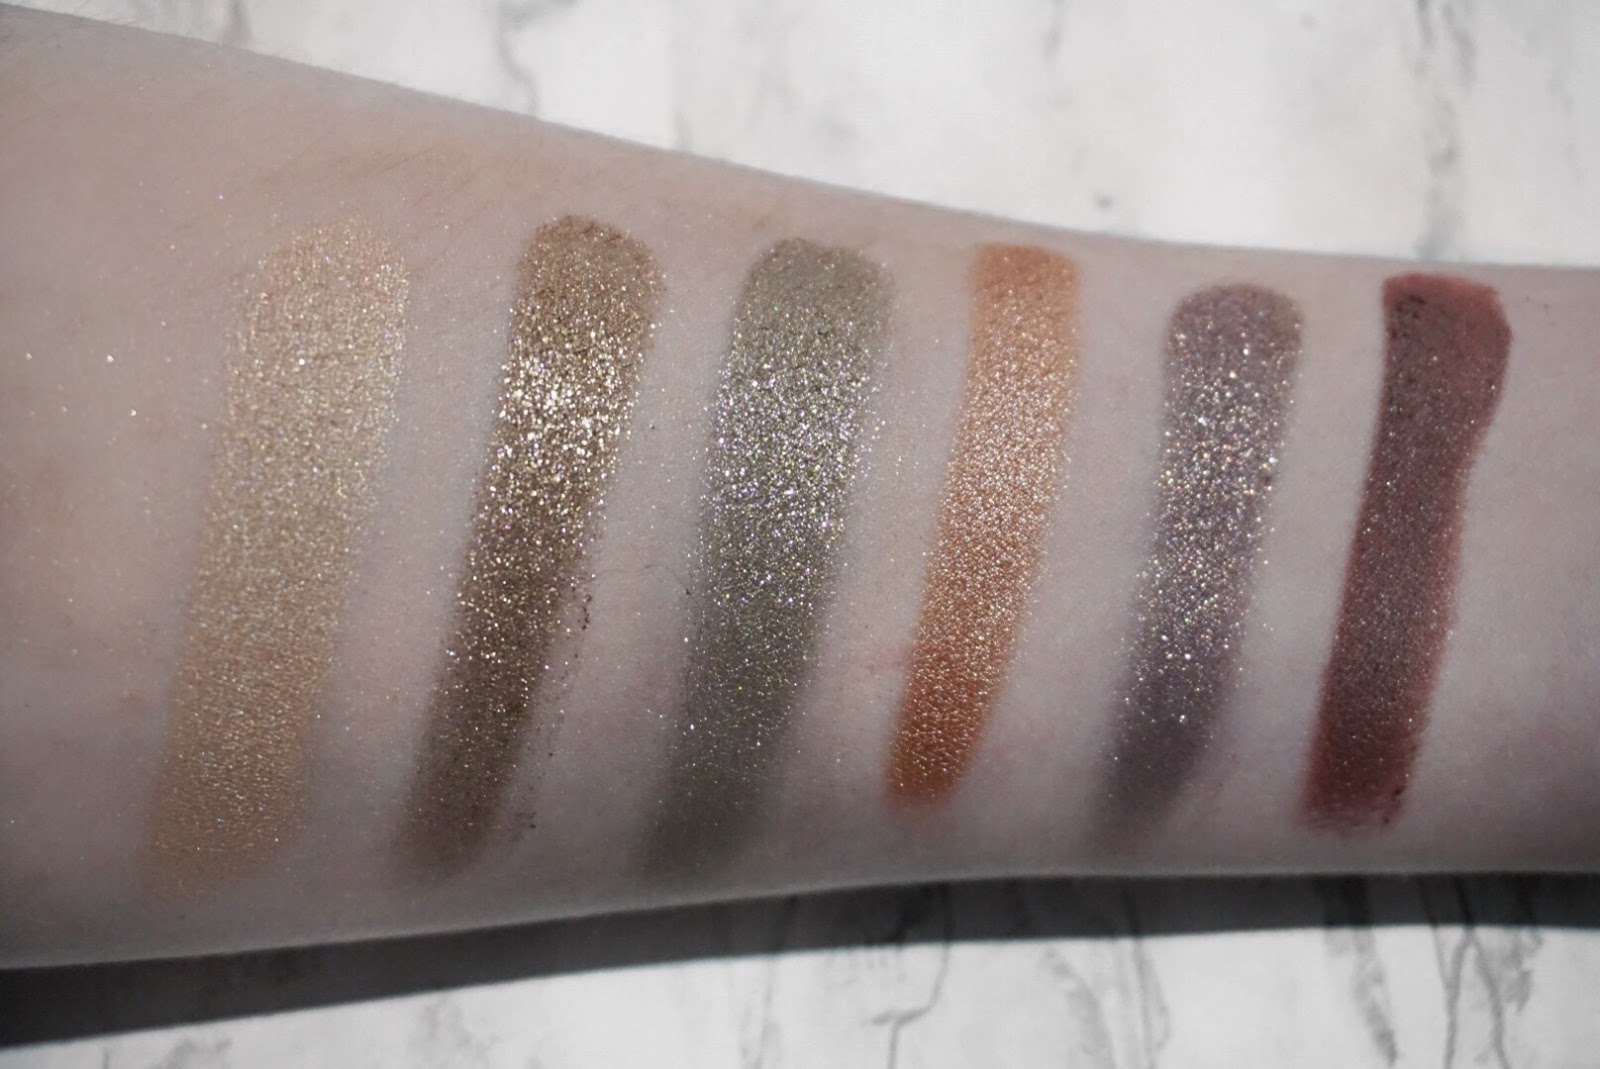 Colourpop Mile High Eyeshadow Set Swatches of the 6 Shades.